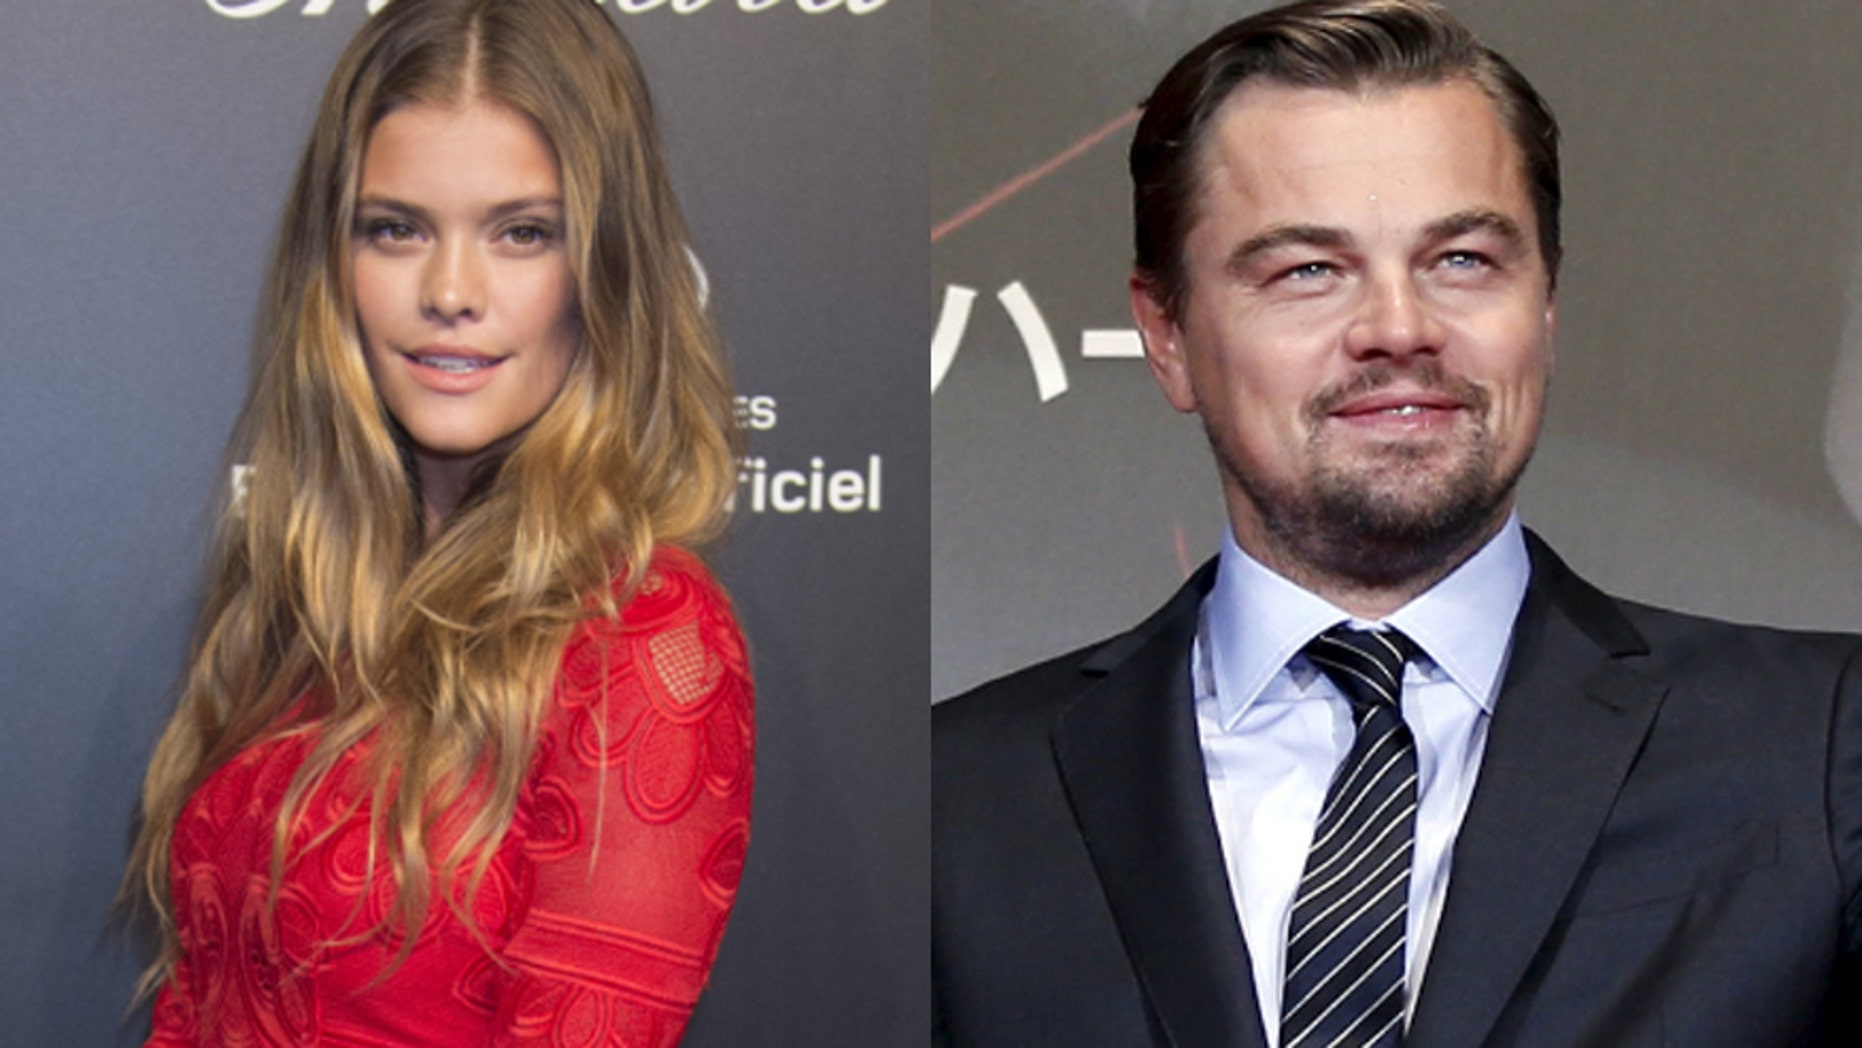 Nina Agdal, left, and Leonardo DiCaprio have reportedly been linked.